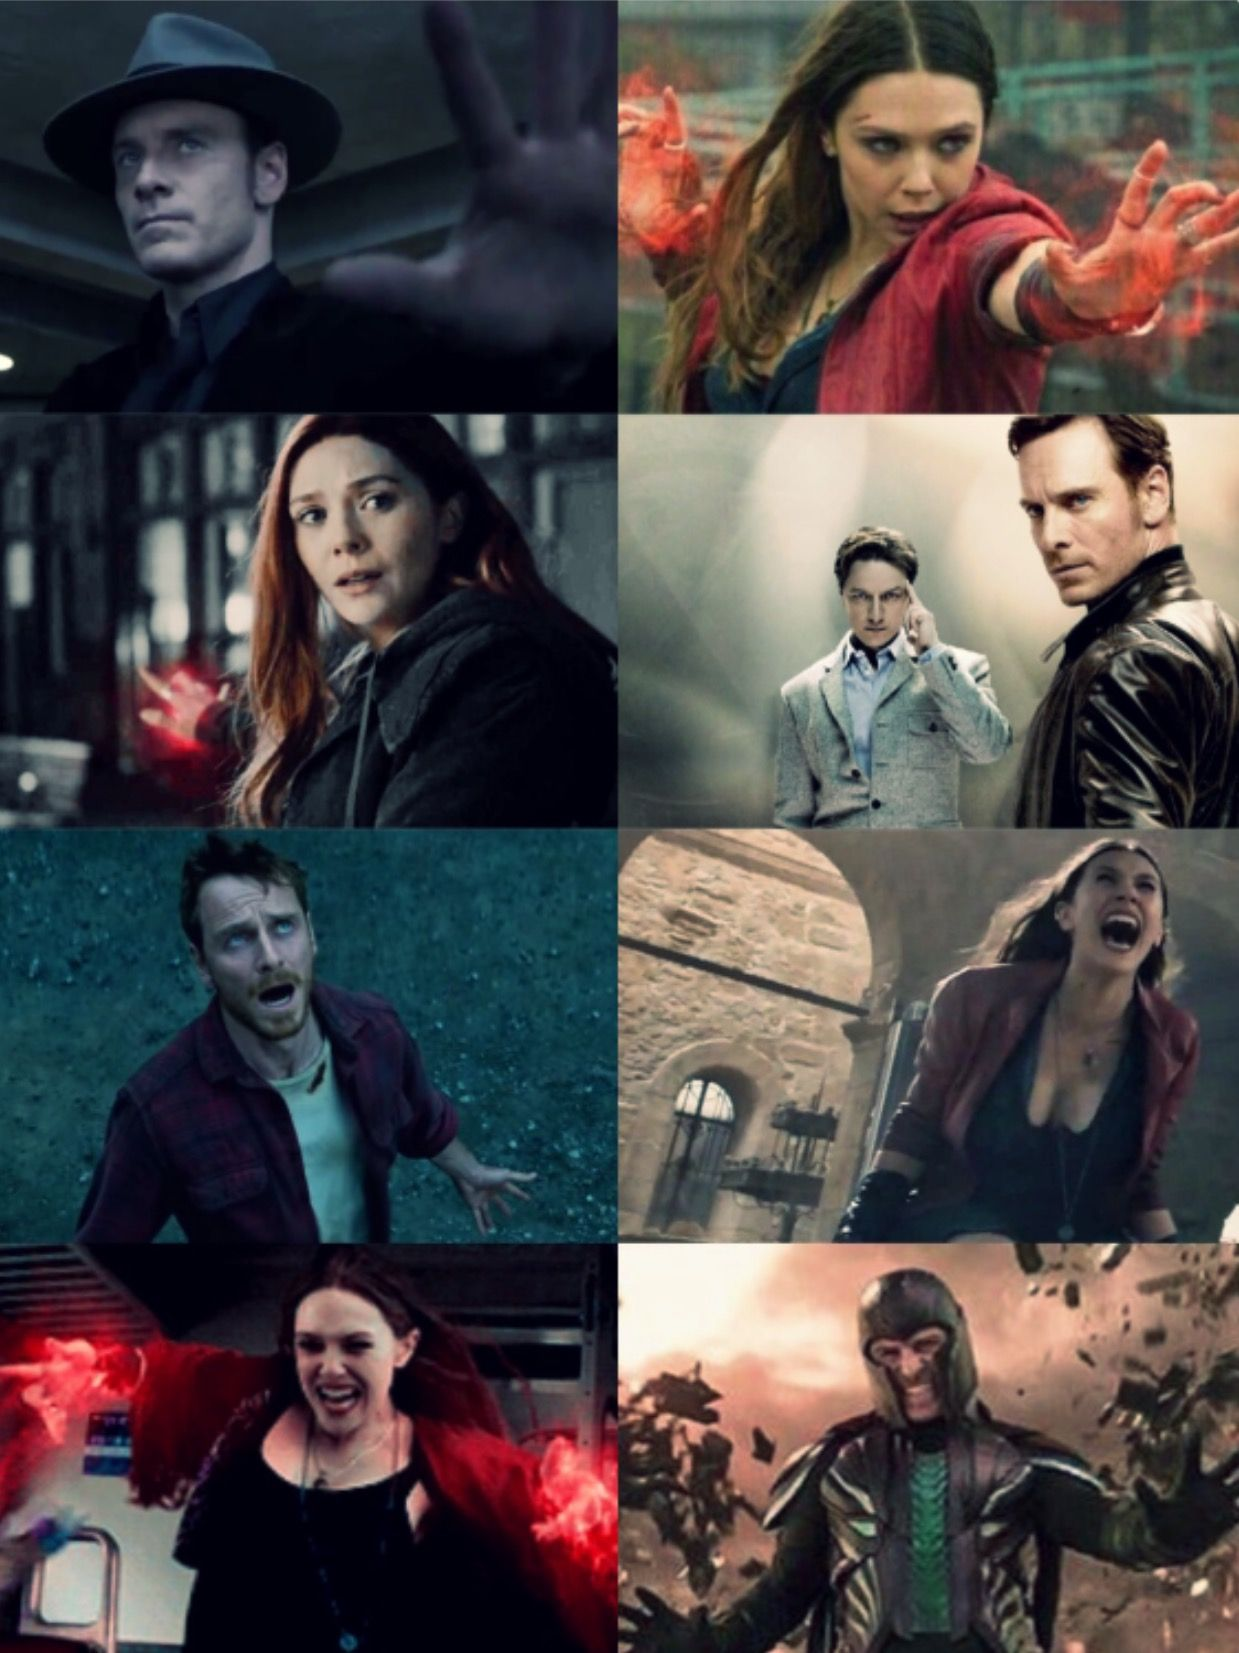 Like Father Like Daughter Magneto Scarlet Witch Father Daughter Parallels Marvel Superheroes Marvel Movies Scarlet Witch